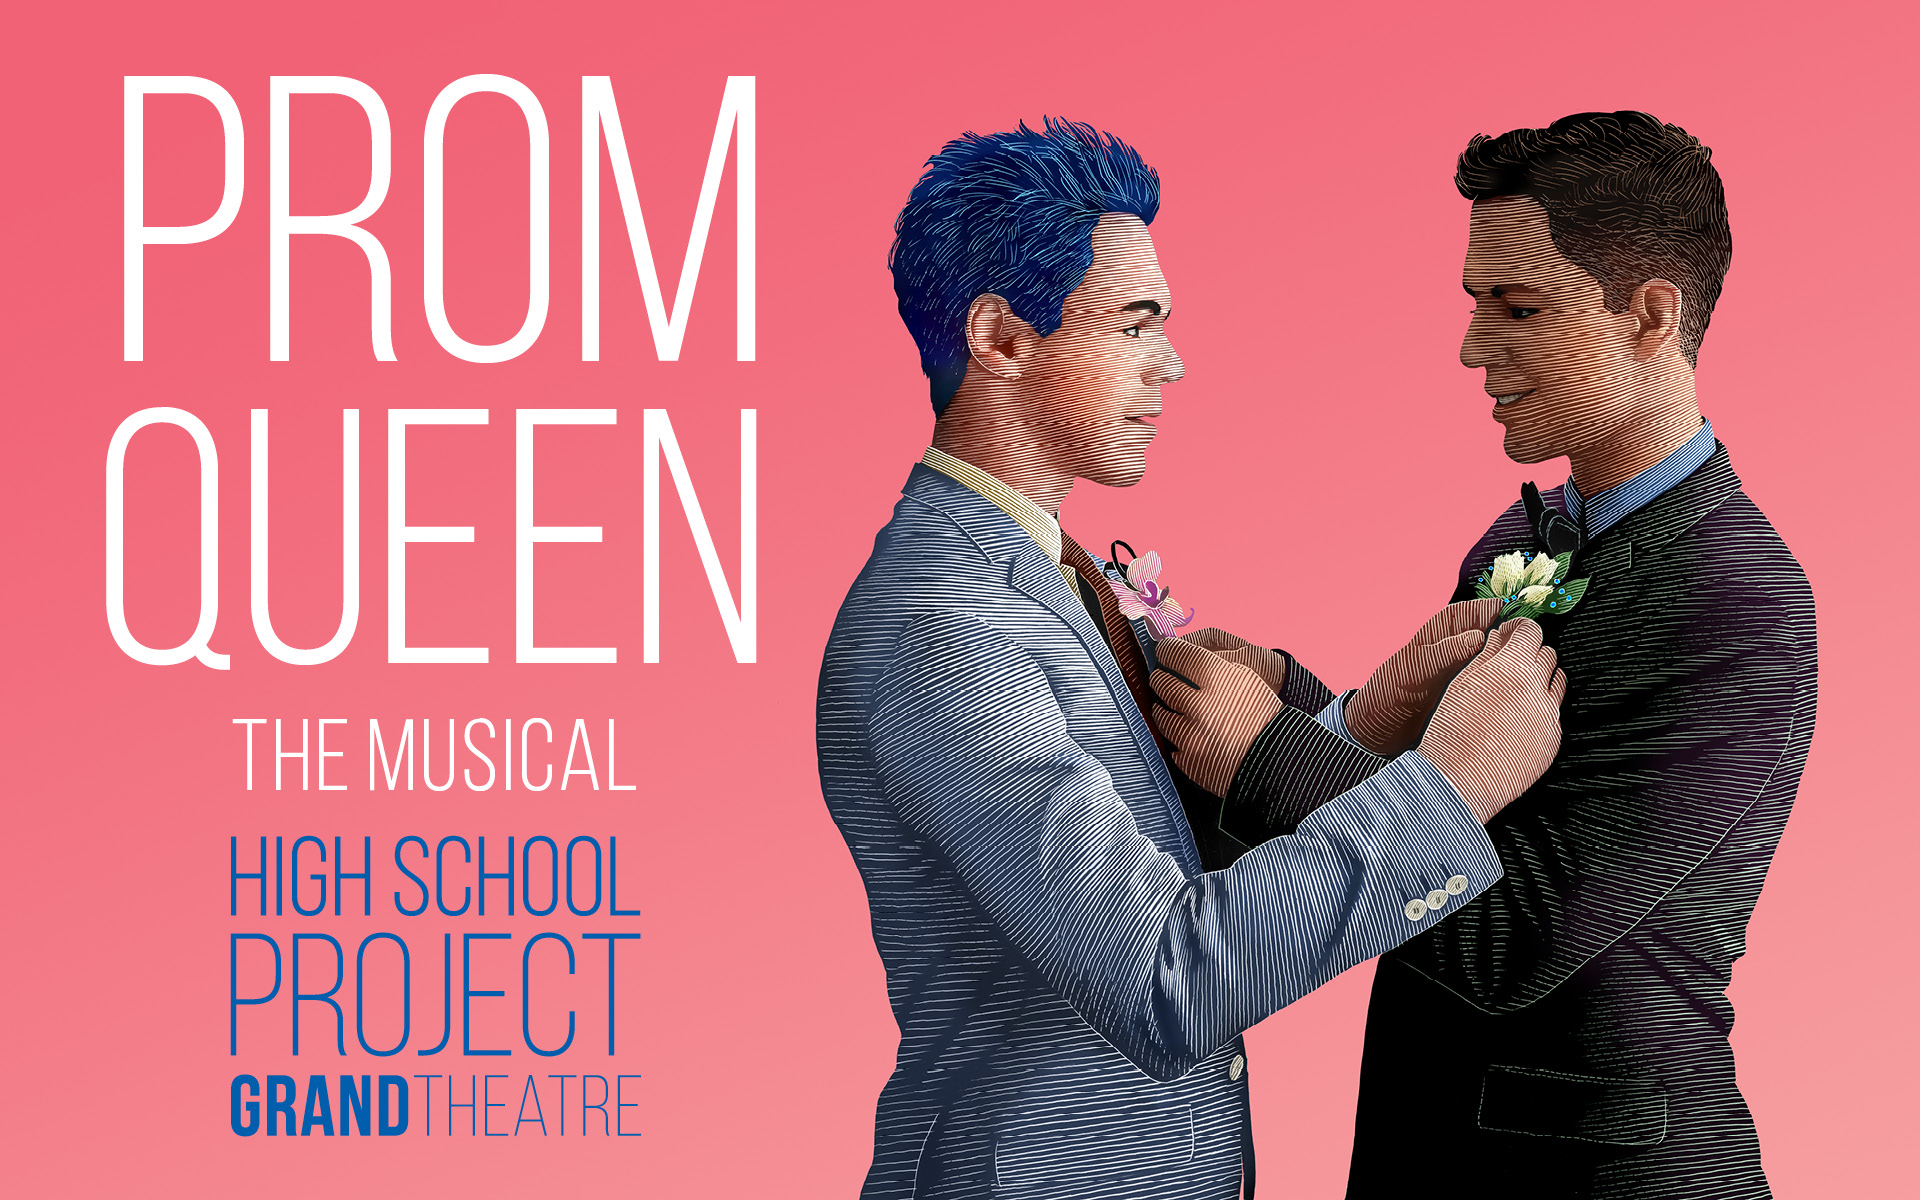 Prom Queen - The Musical